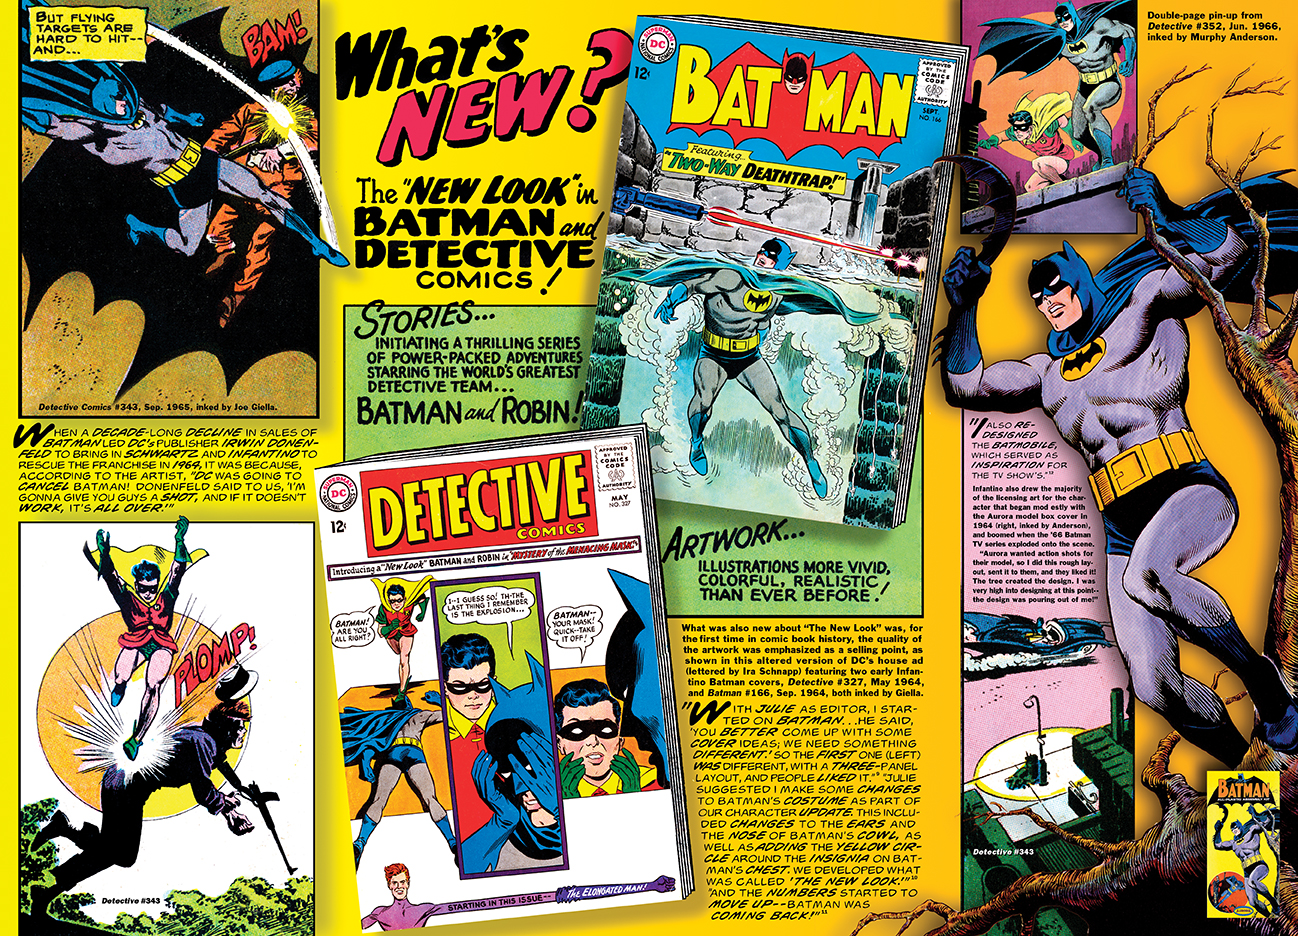 Schnapp's house ad is front and center of this Batman spread in the Carmine Infantino chapter of my Silver Age book.